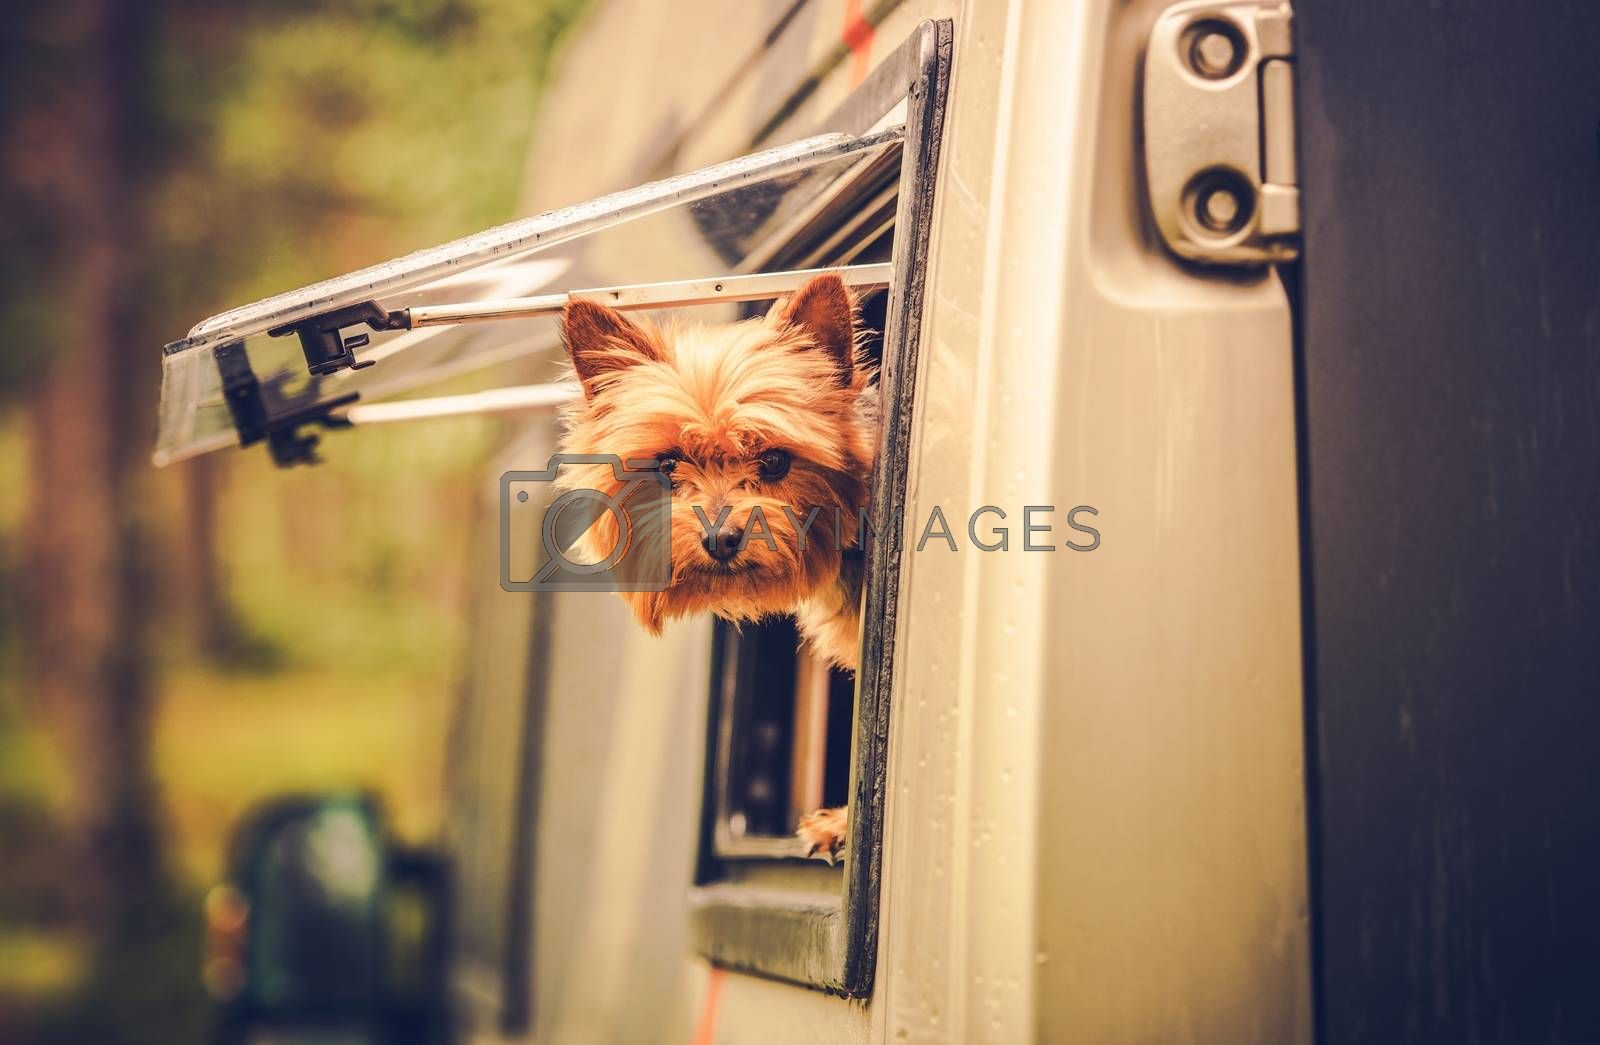 RV Travel with Dog. Motorhome Traveling with Pet. Middle Age Australian Silky Terrier in Motorcoach Window Looking Around.